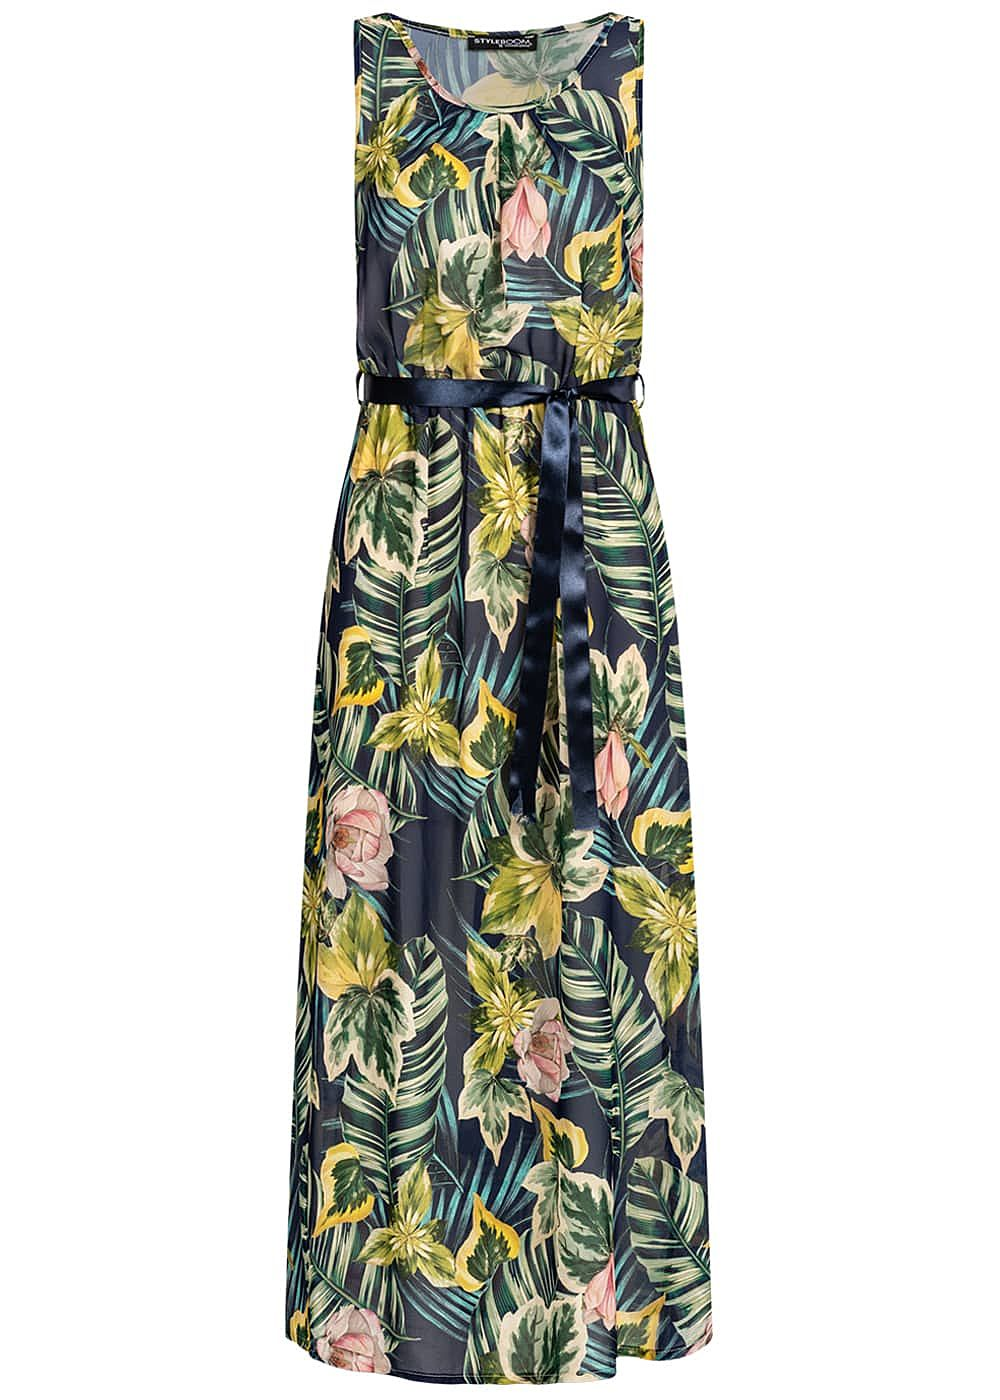 Styleboom Fashion Damen Maxi Dress Belt Tropical Print navy blau multicolor - Art.-Nr.: 19056443